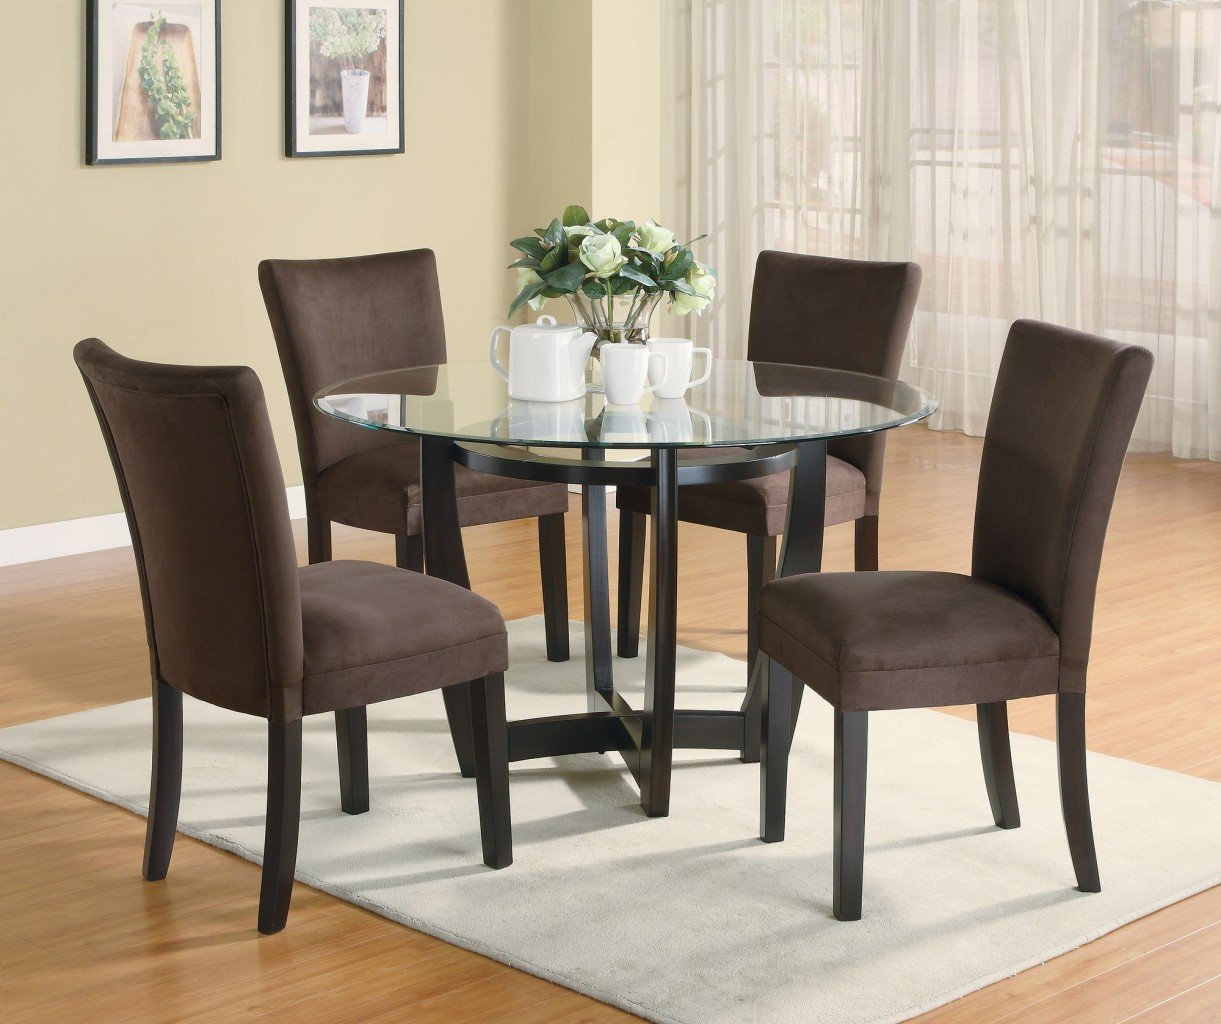 Cheap dining room table sets home furniture design for Small dining room furniture ideas